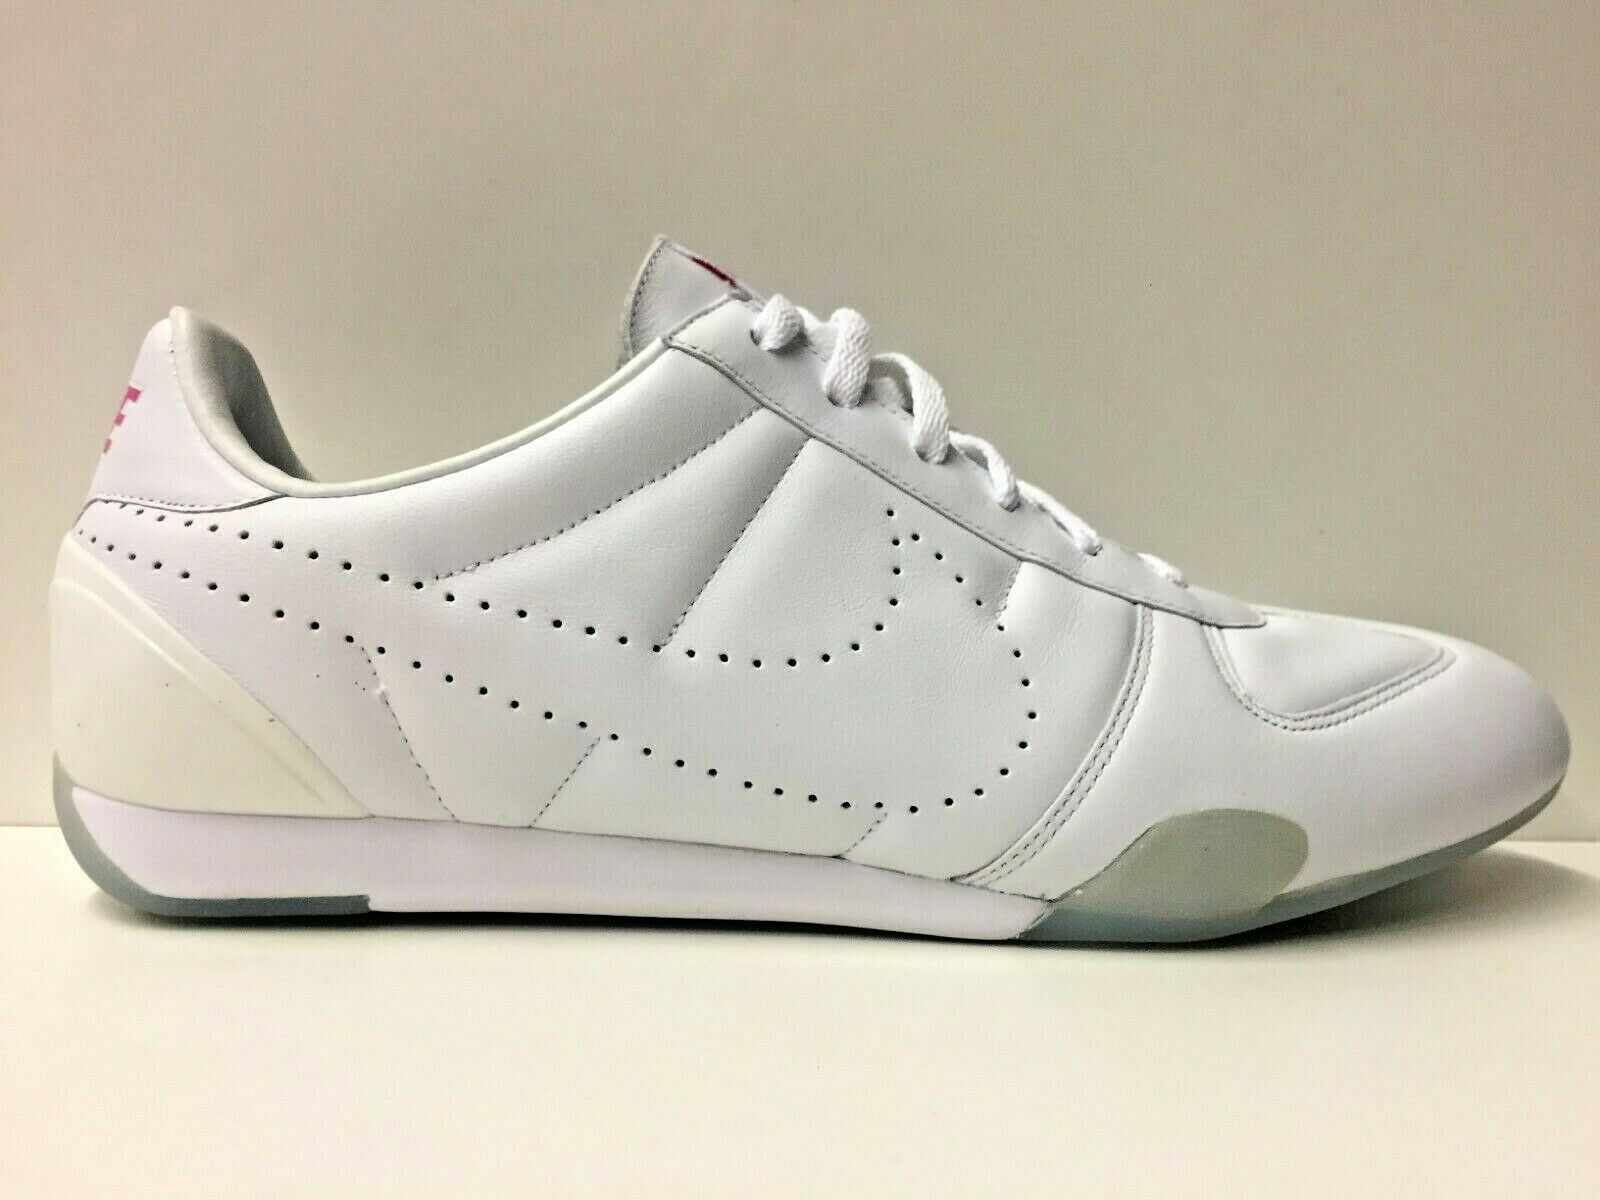 SCARPE SNEAKERS DONNA NIKE ORIGINALE SPRINT SISTER LEATHER 311919 111 PELLE P/E